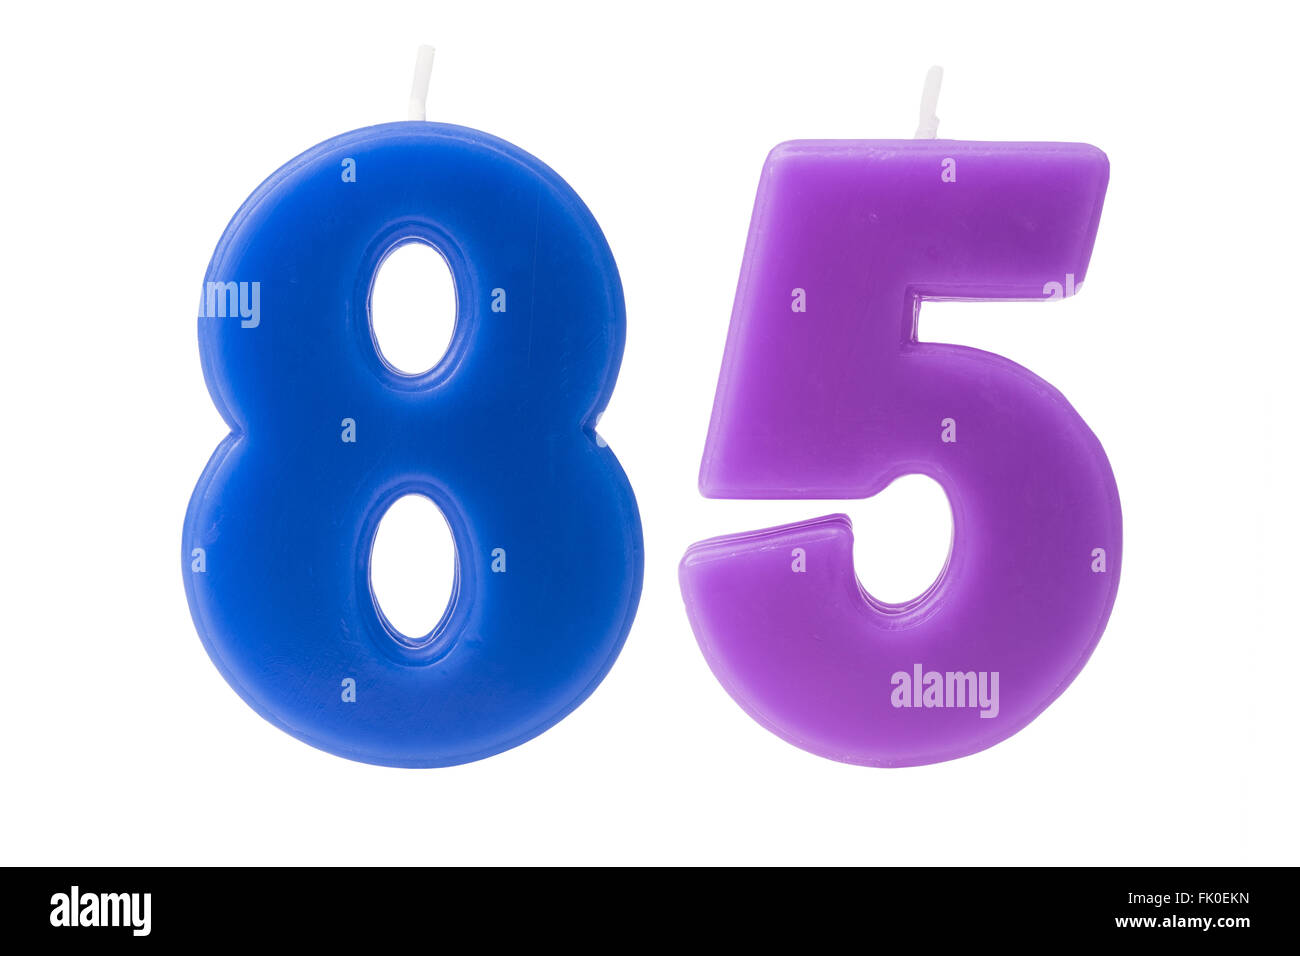 Colorful birthday candles in the form of the number 85 on white background - Stock Image